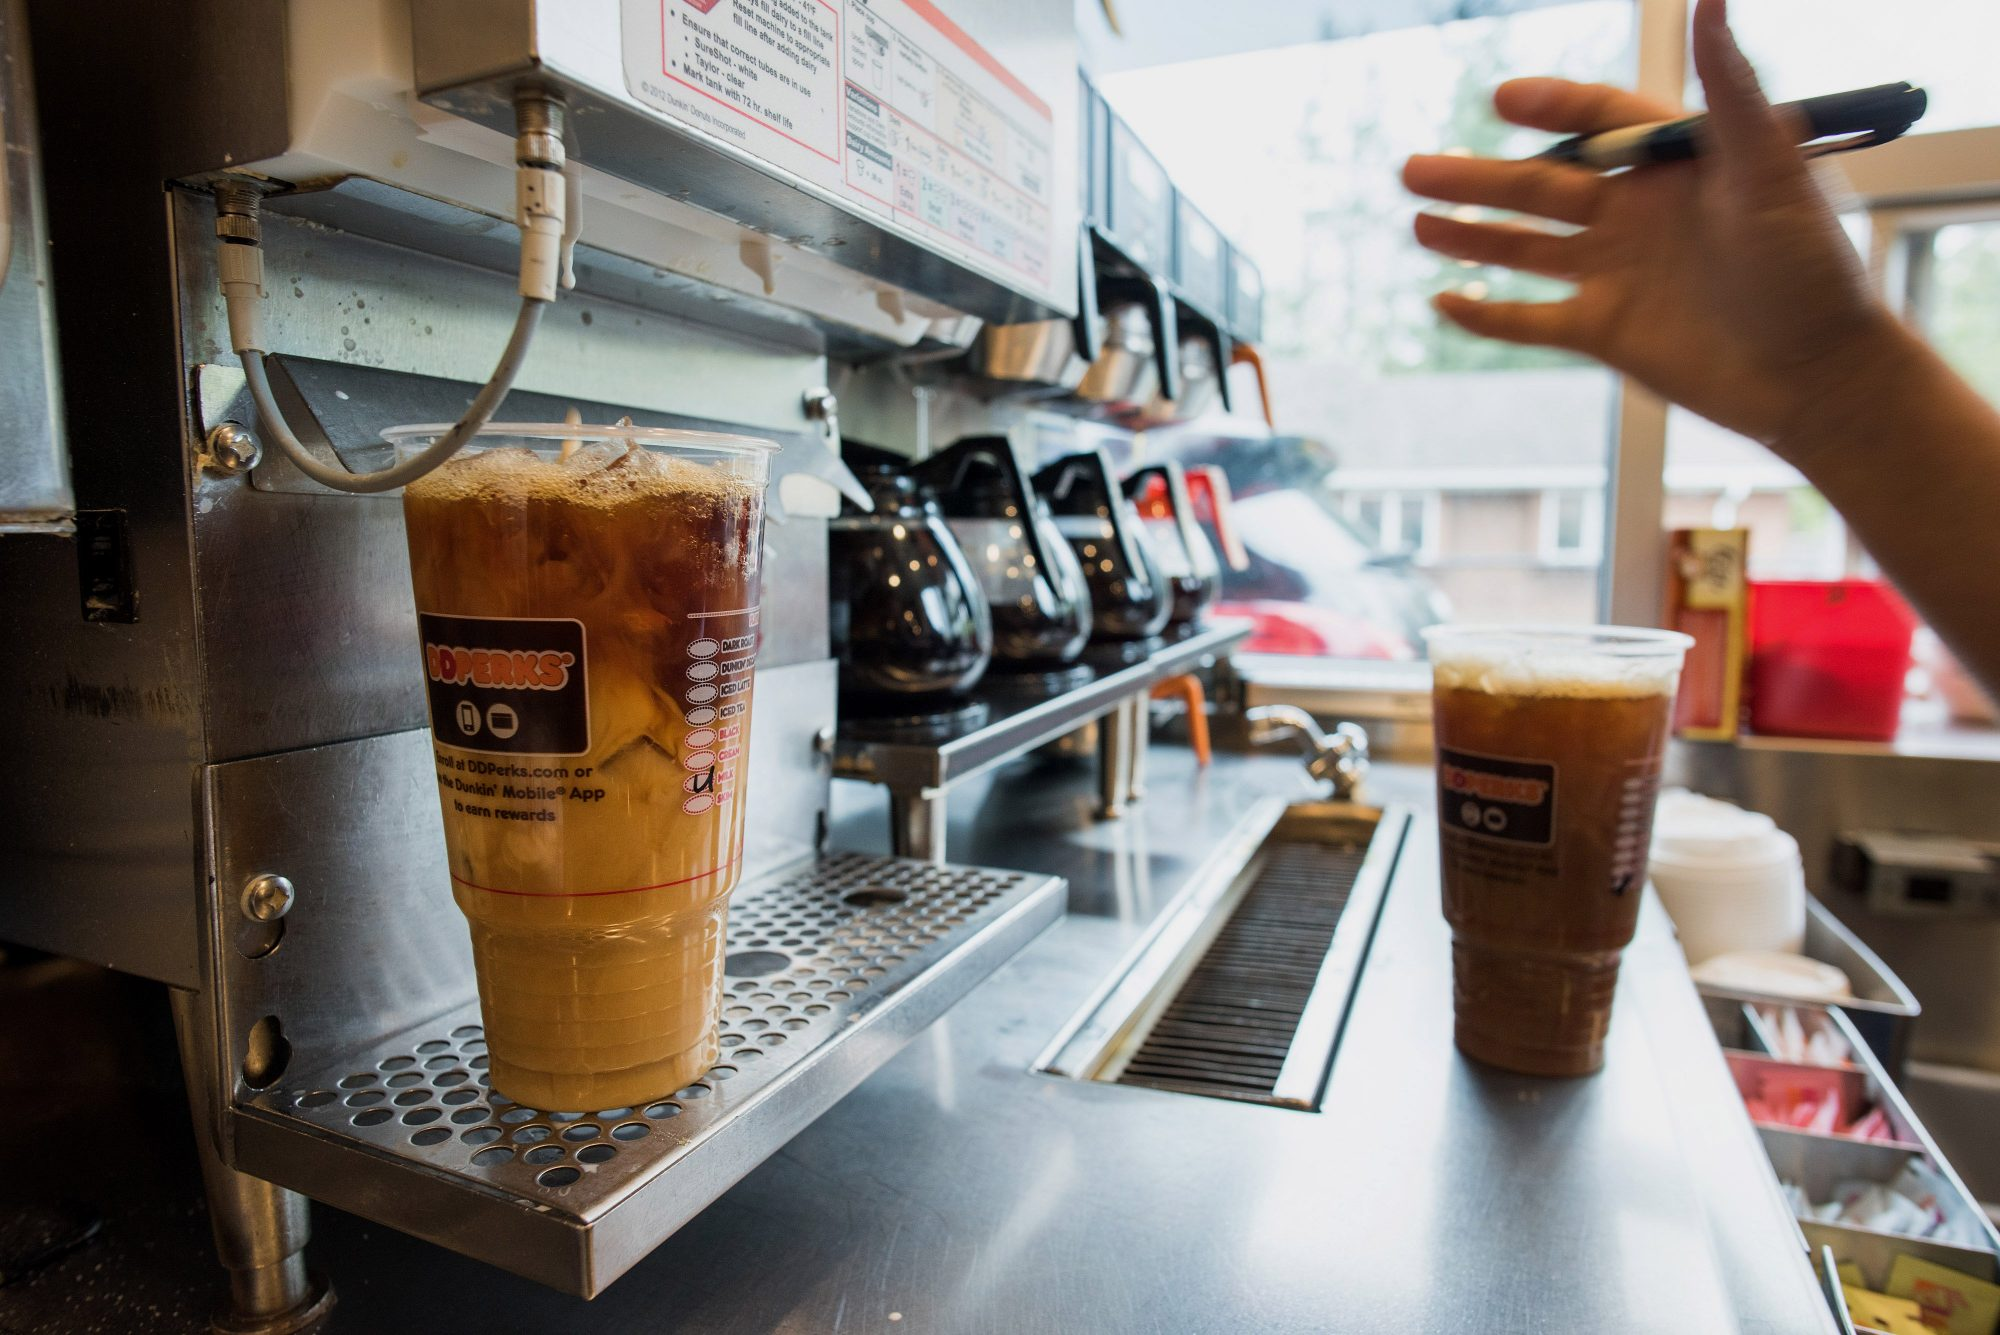 The Coffee Coolatta 'Isn't Good Enough' So Dunkin' Donuts Is Getting Rid of It